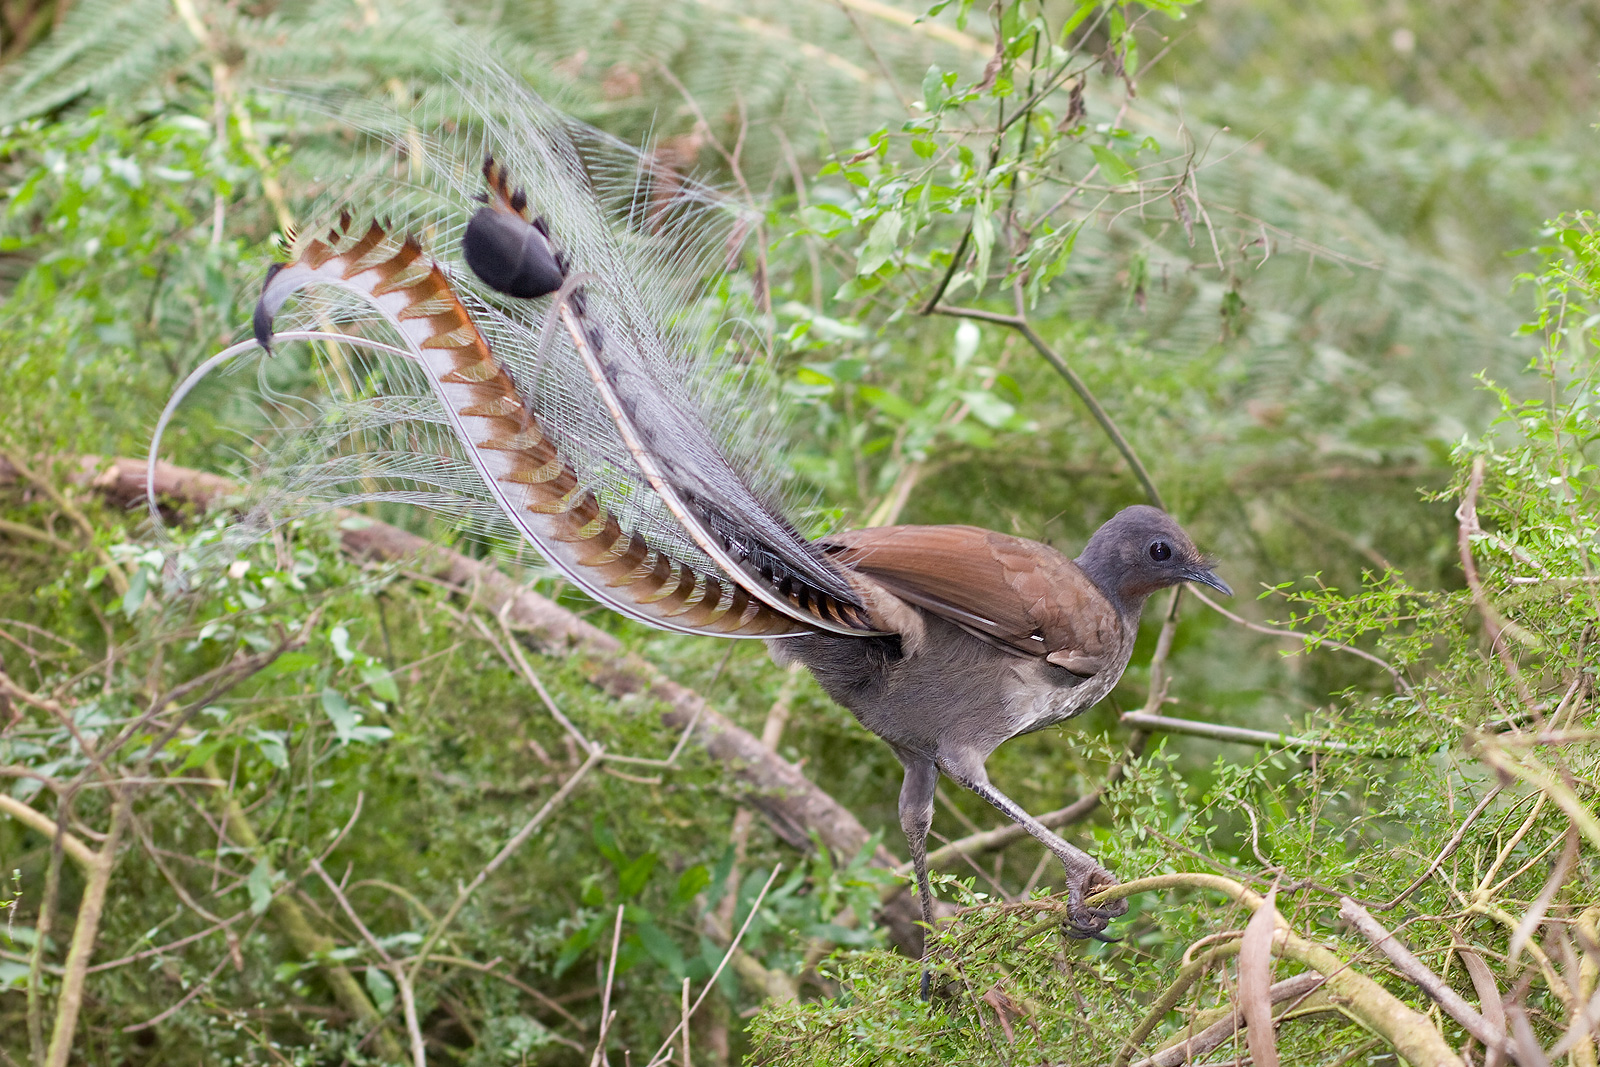 The tail feathers of a Lyre Bird facing away from camera in a tree